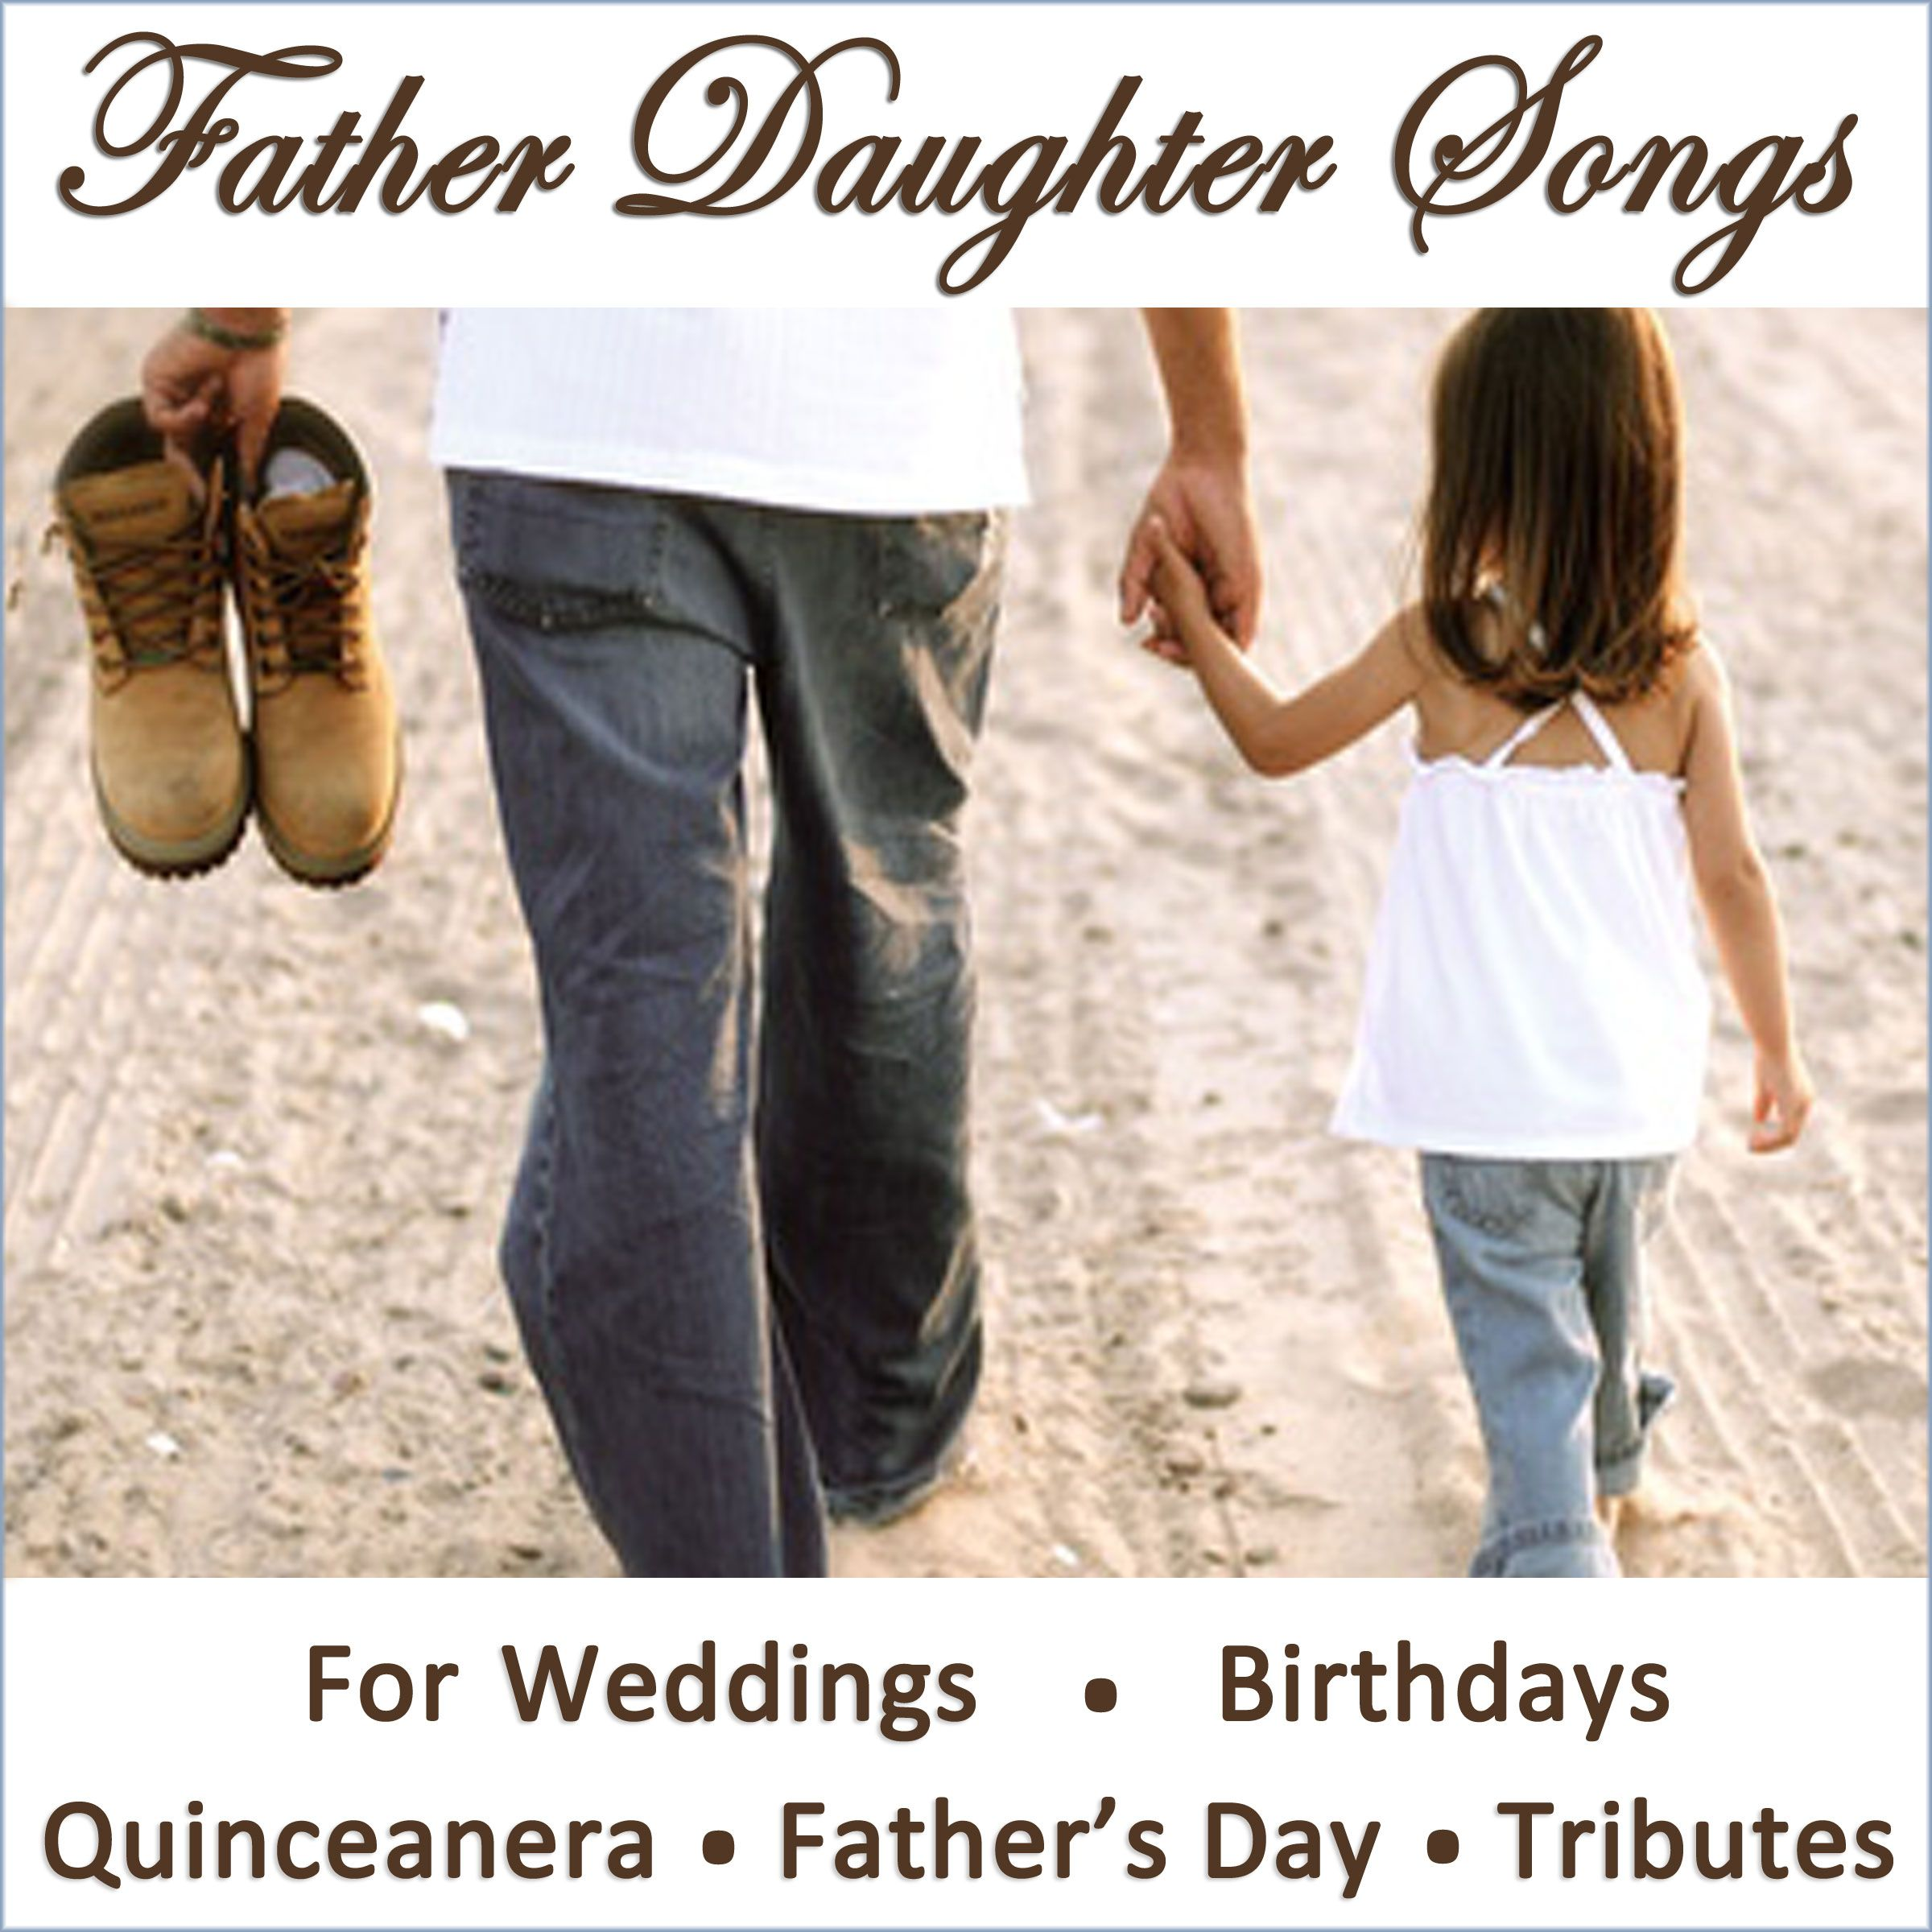 Father Daughter Songs For Weddings, Birthdays, Quinceanera